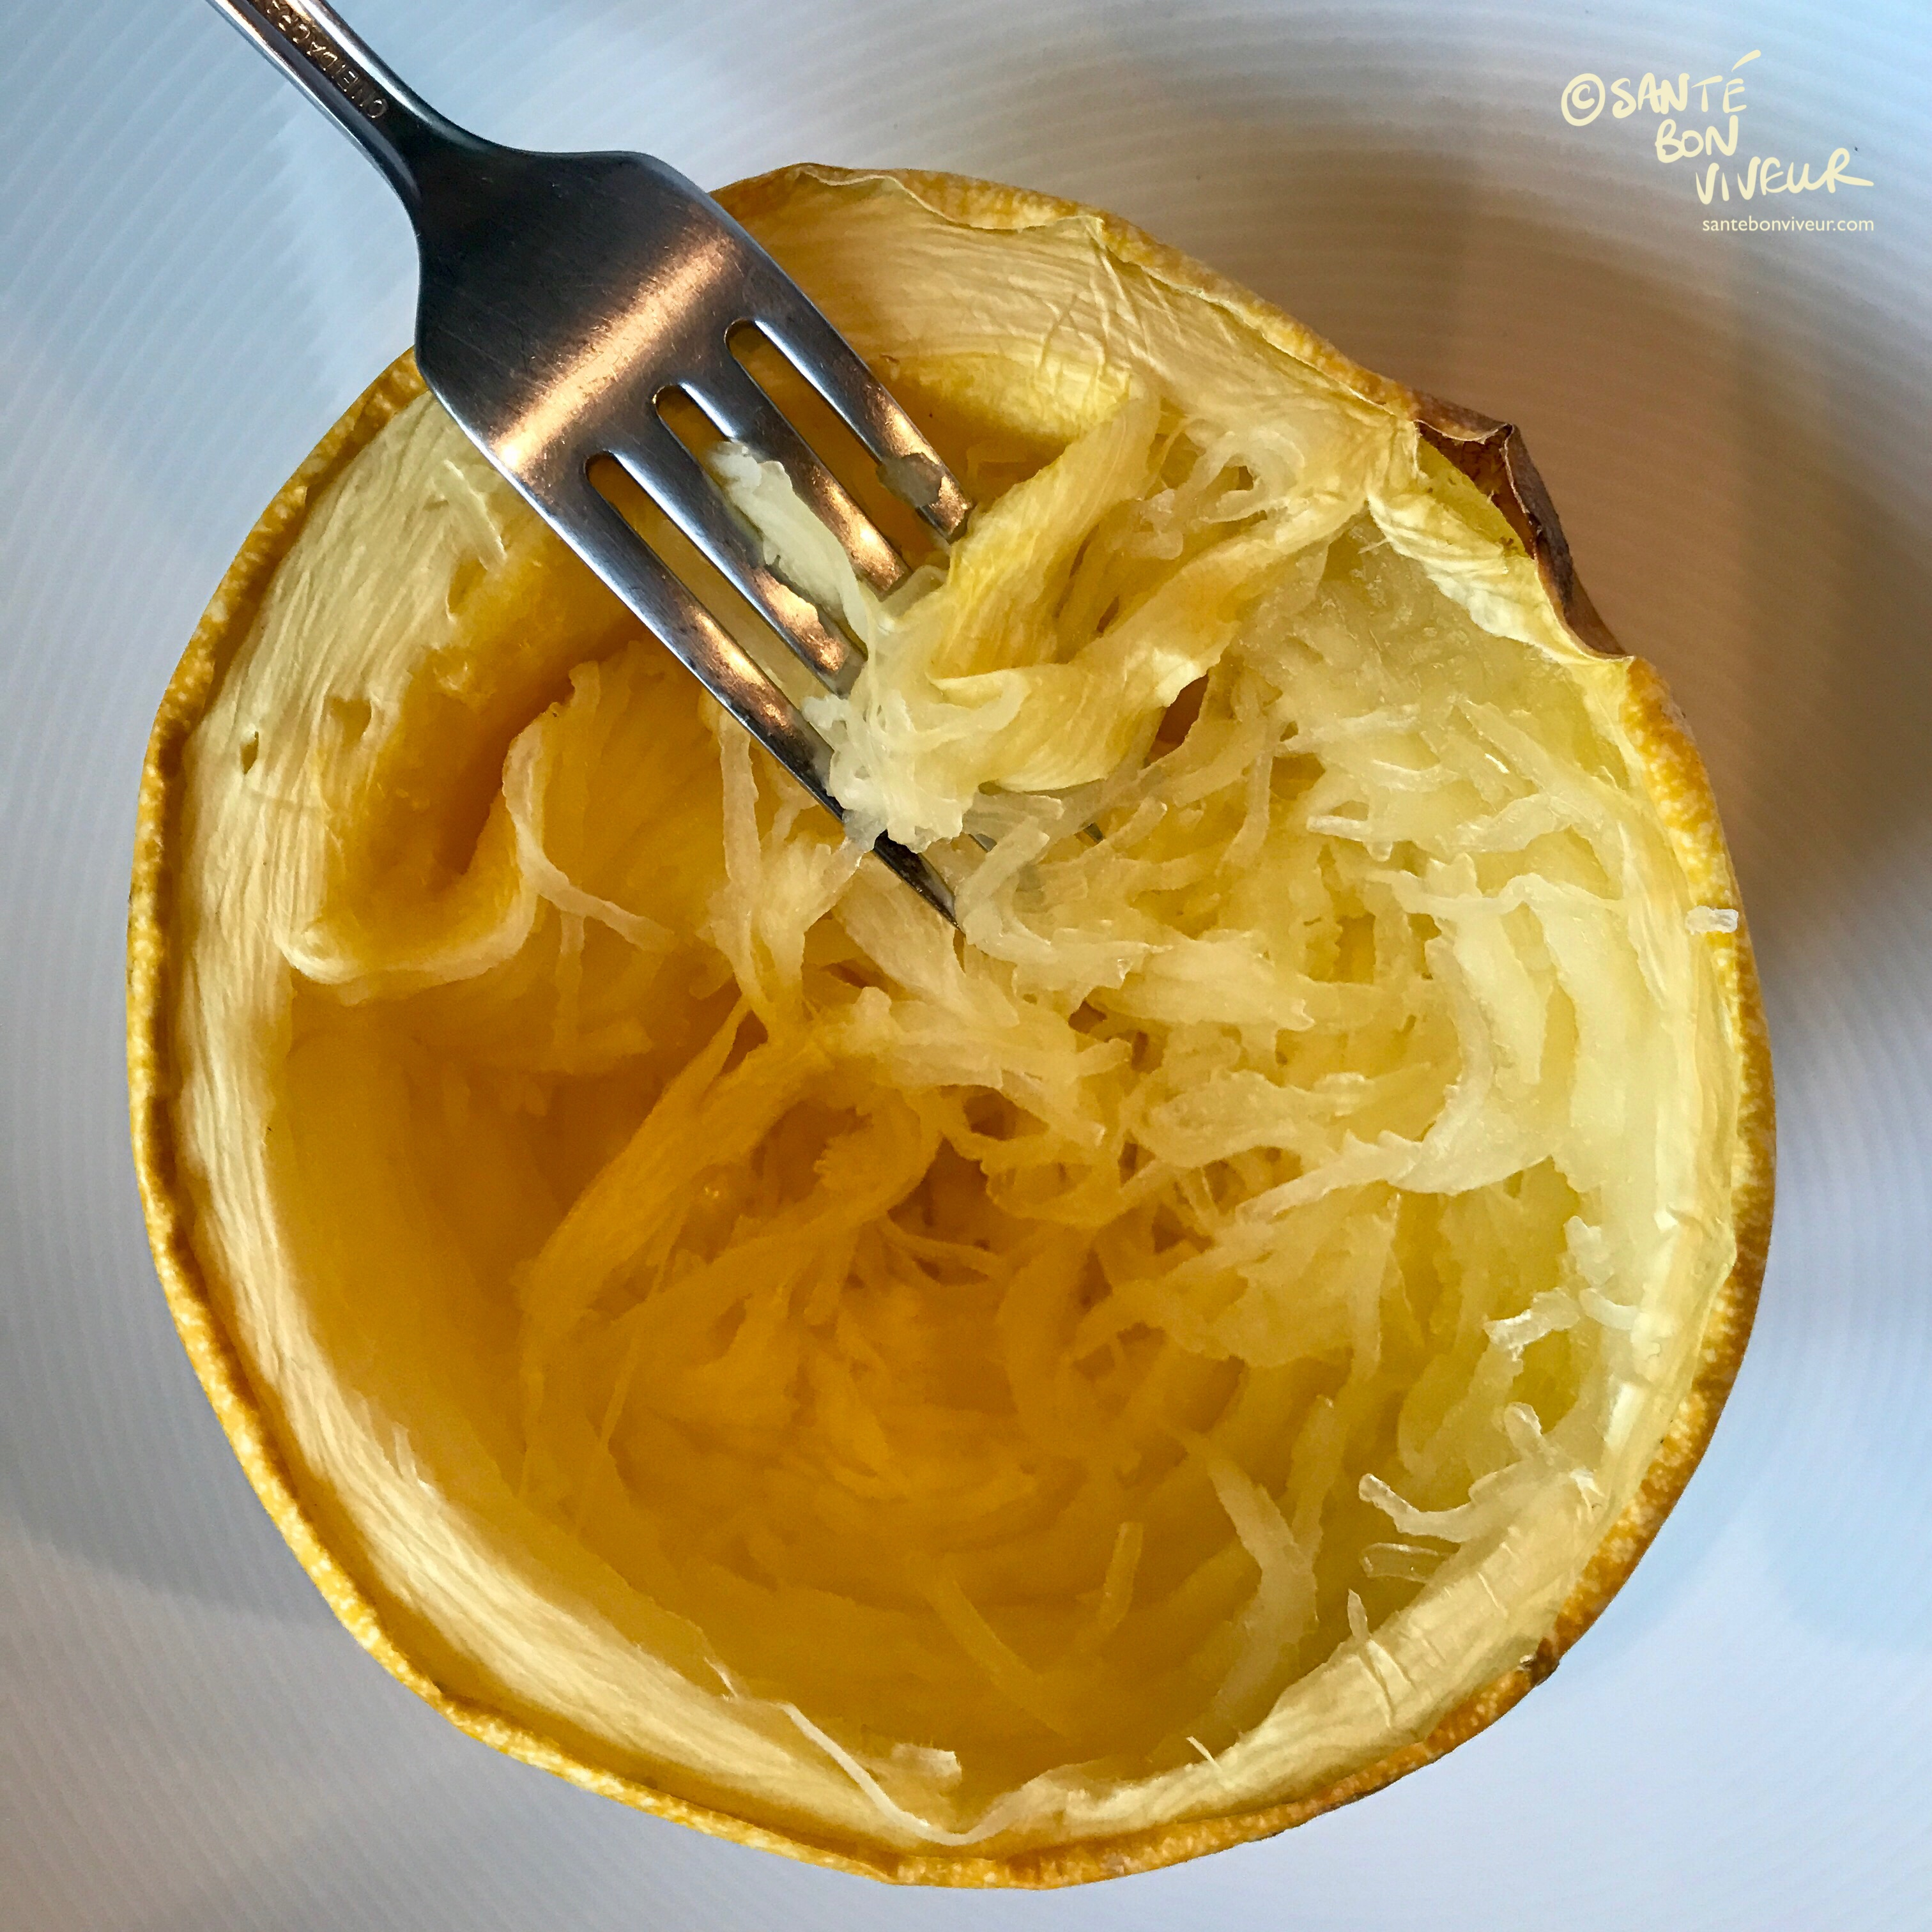 Simply pull at Spaghetti Squash with a fork to release the noodle-like strands